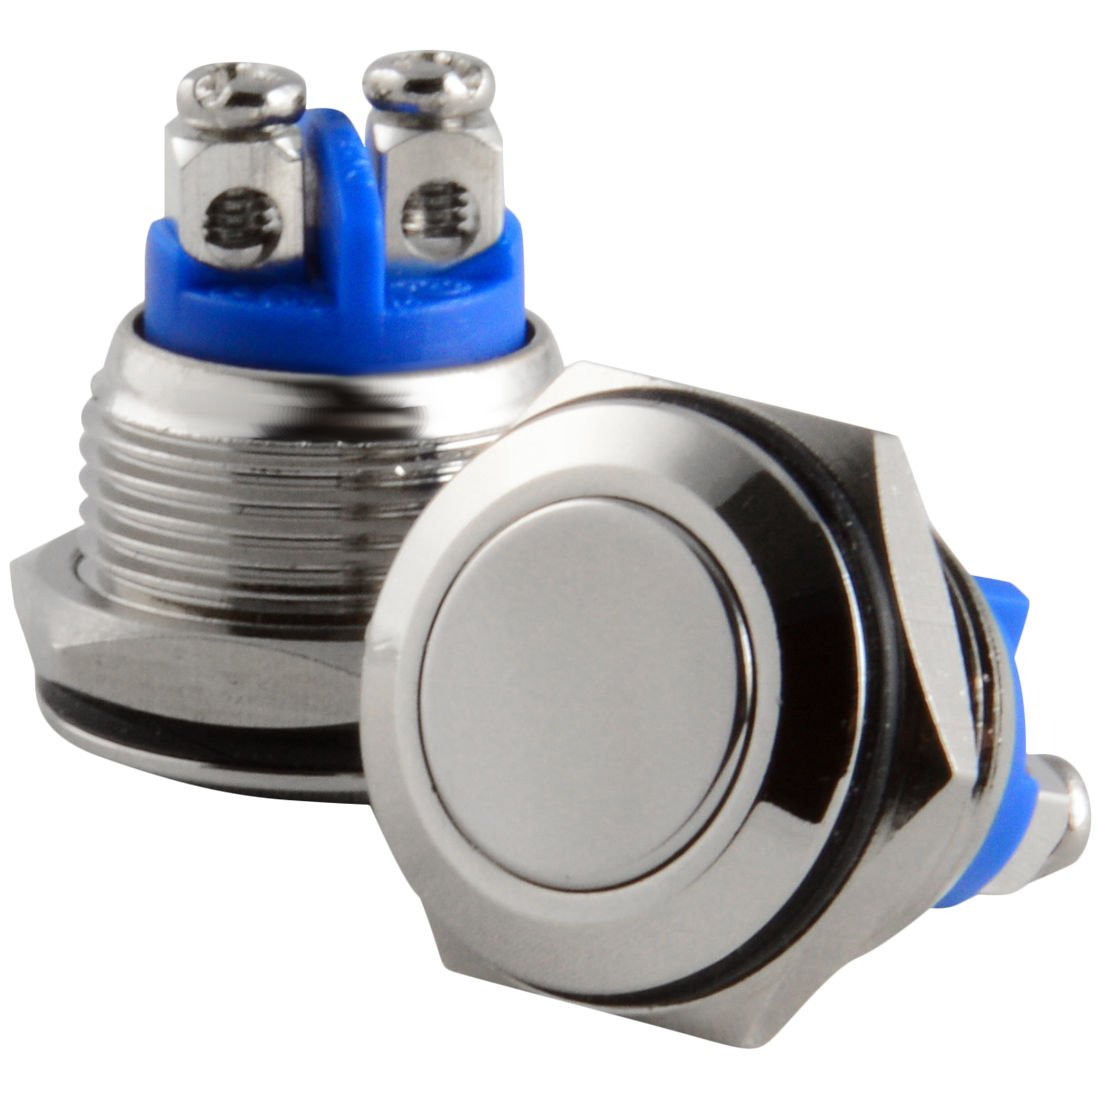 16mm Starter Switch / Boat Horn Momentary Push Button Stainless ...